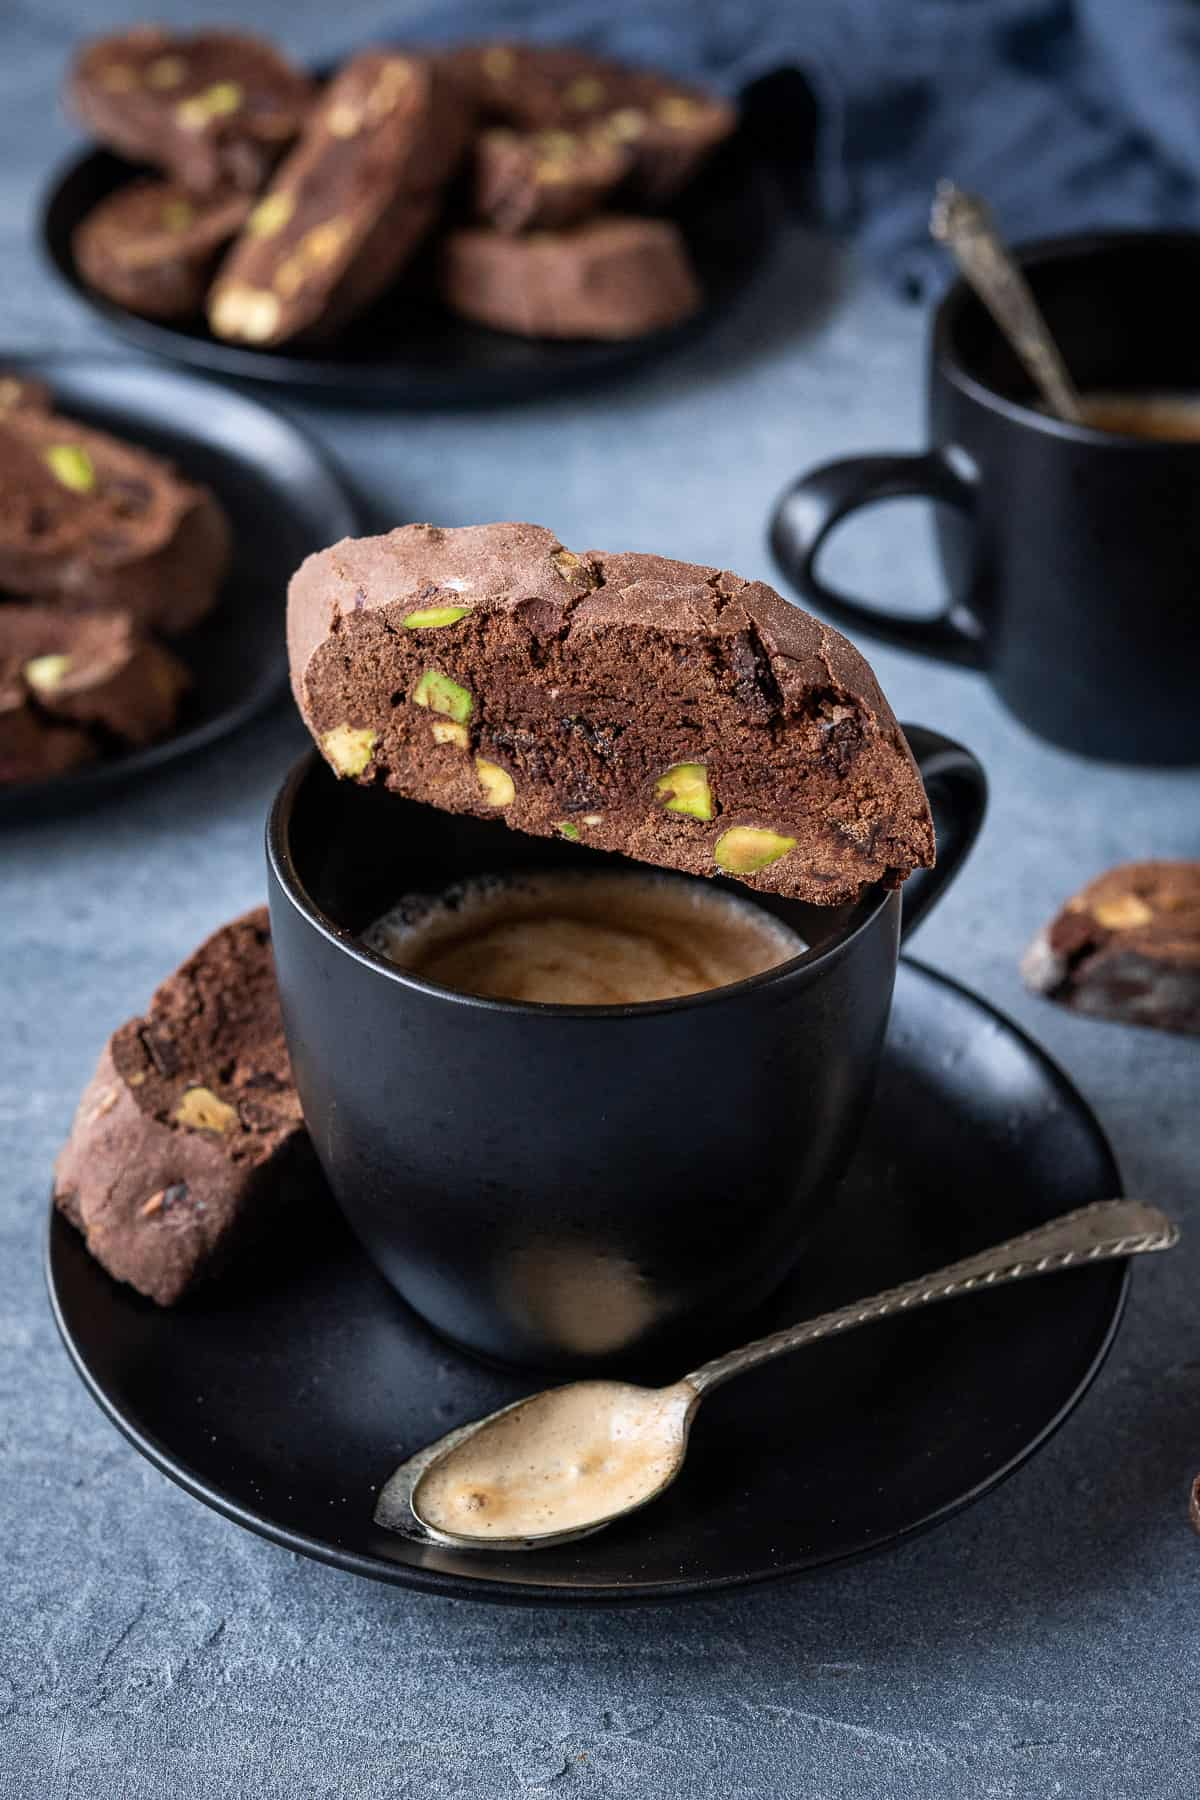 A vegan chocolate pistachio biscotti cookie balanced on top of a black coffee cup.